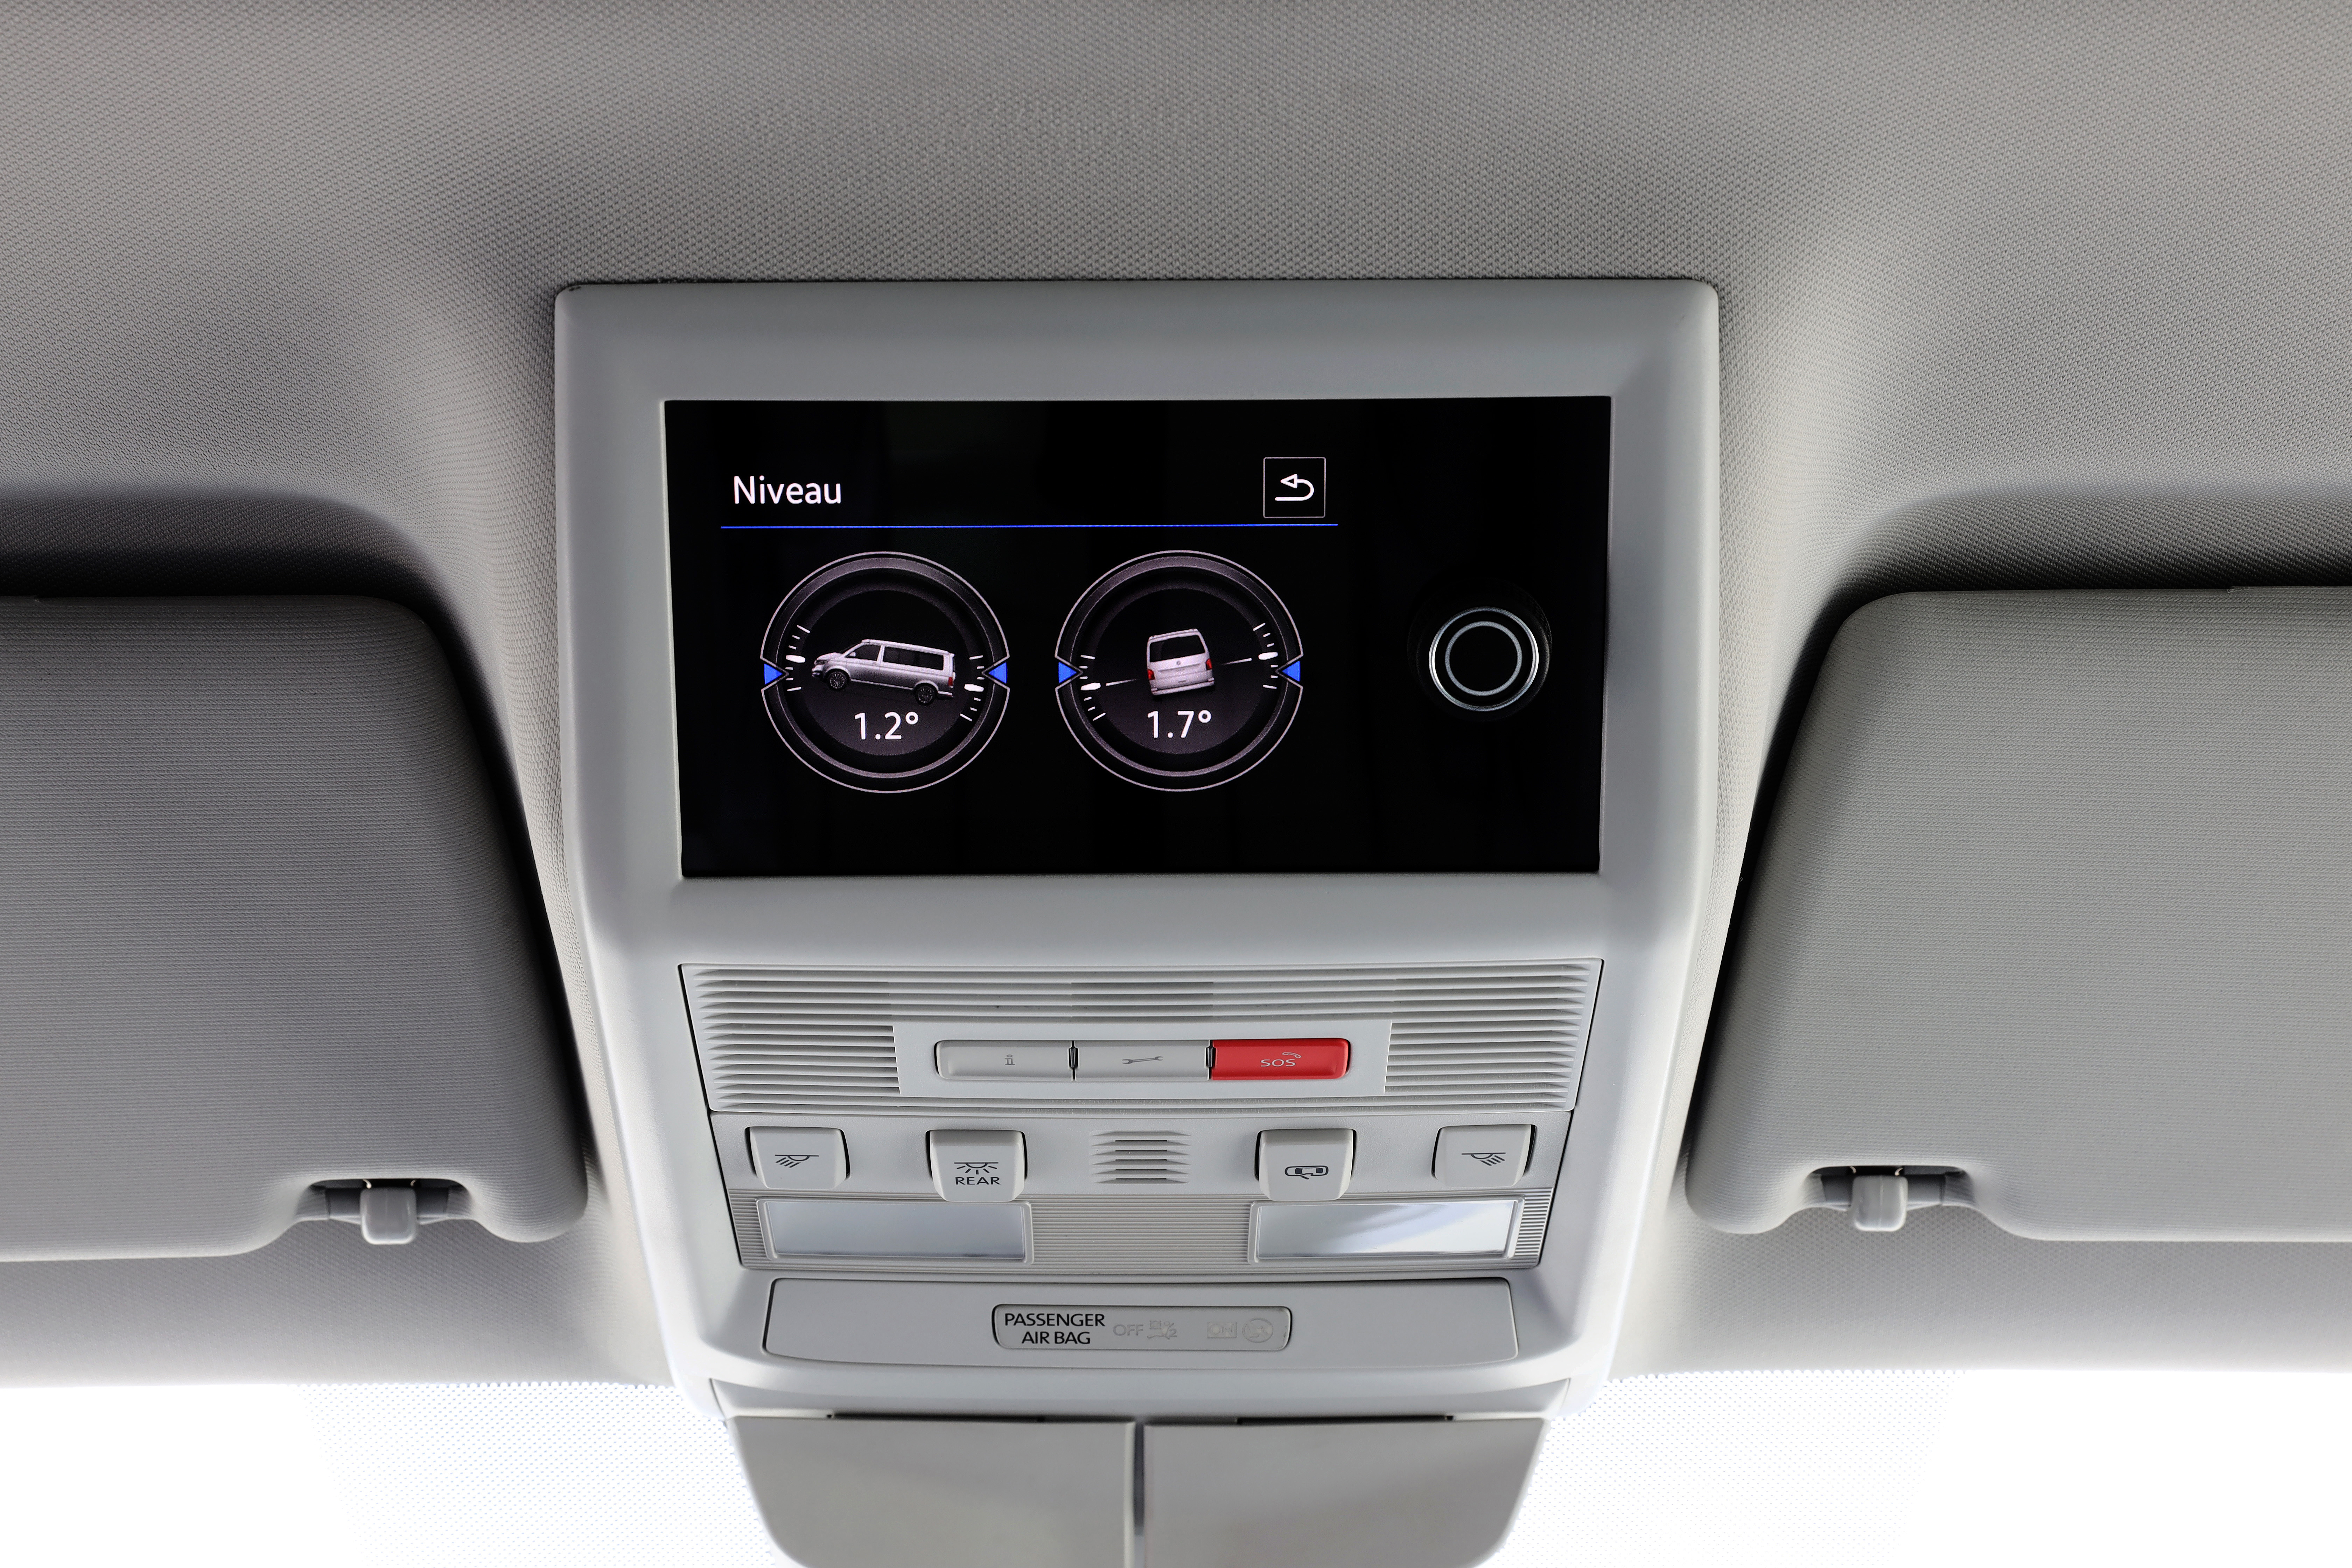 A new overhead screen controls many of the van's functions